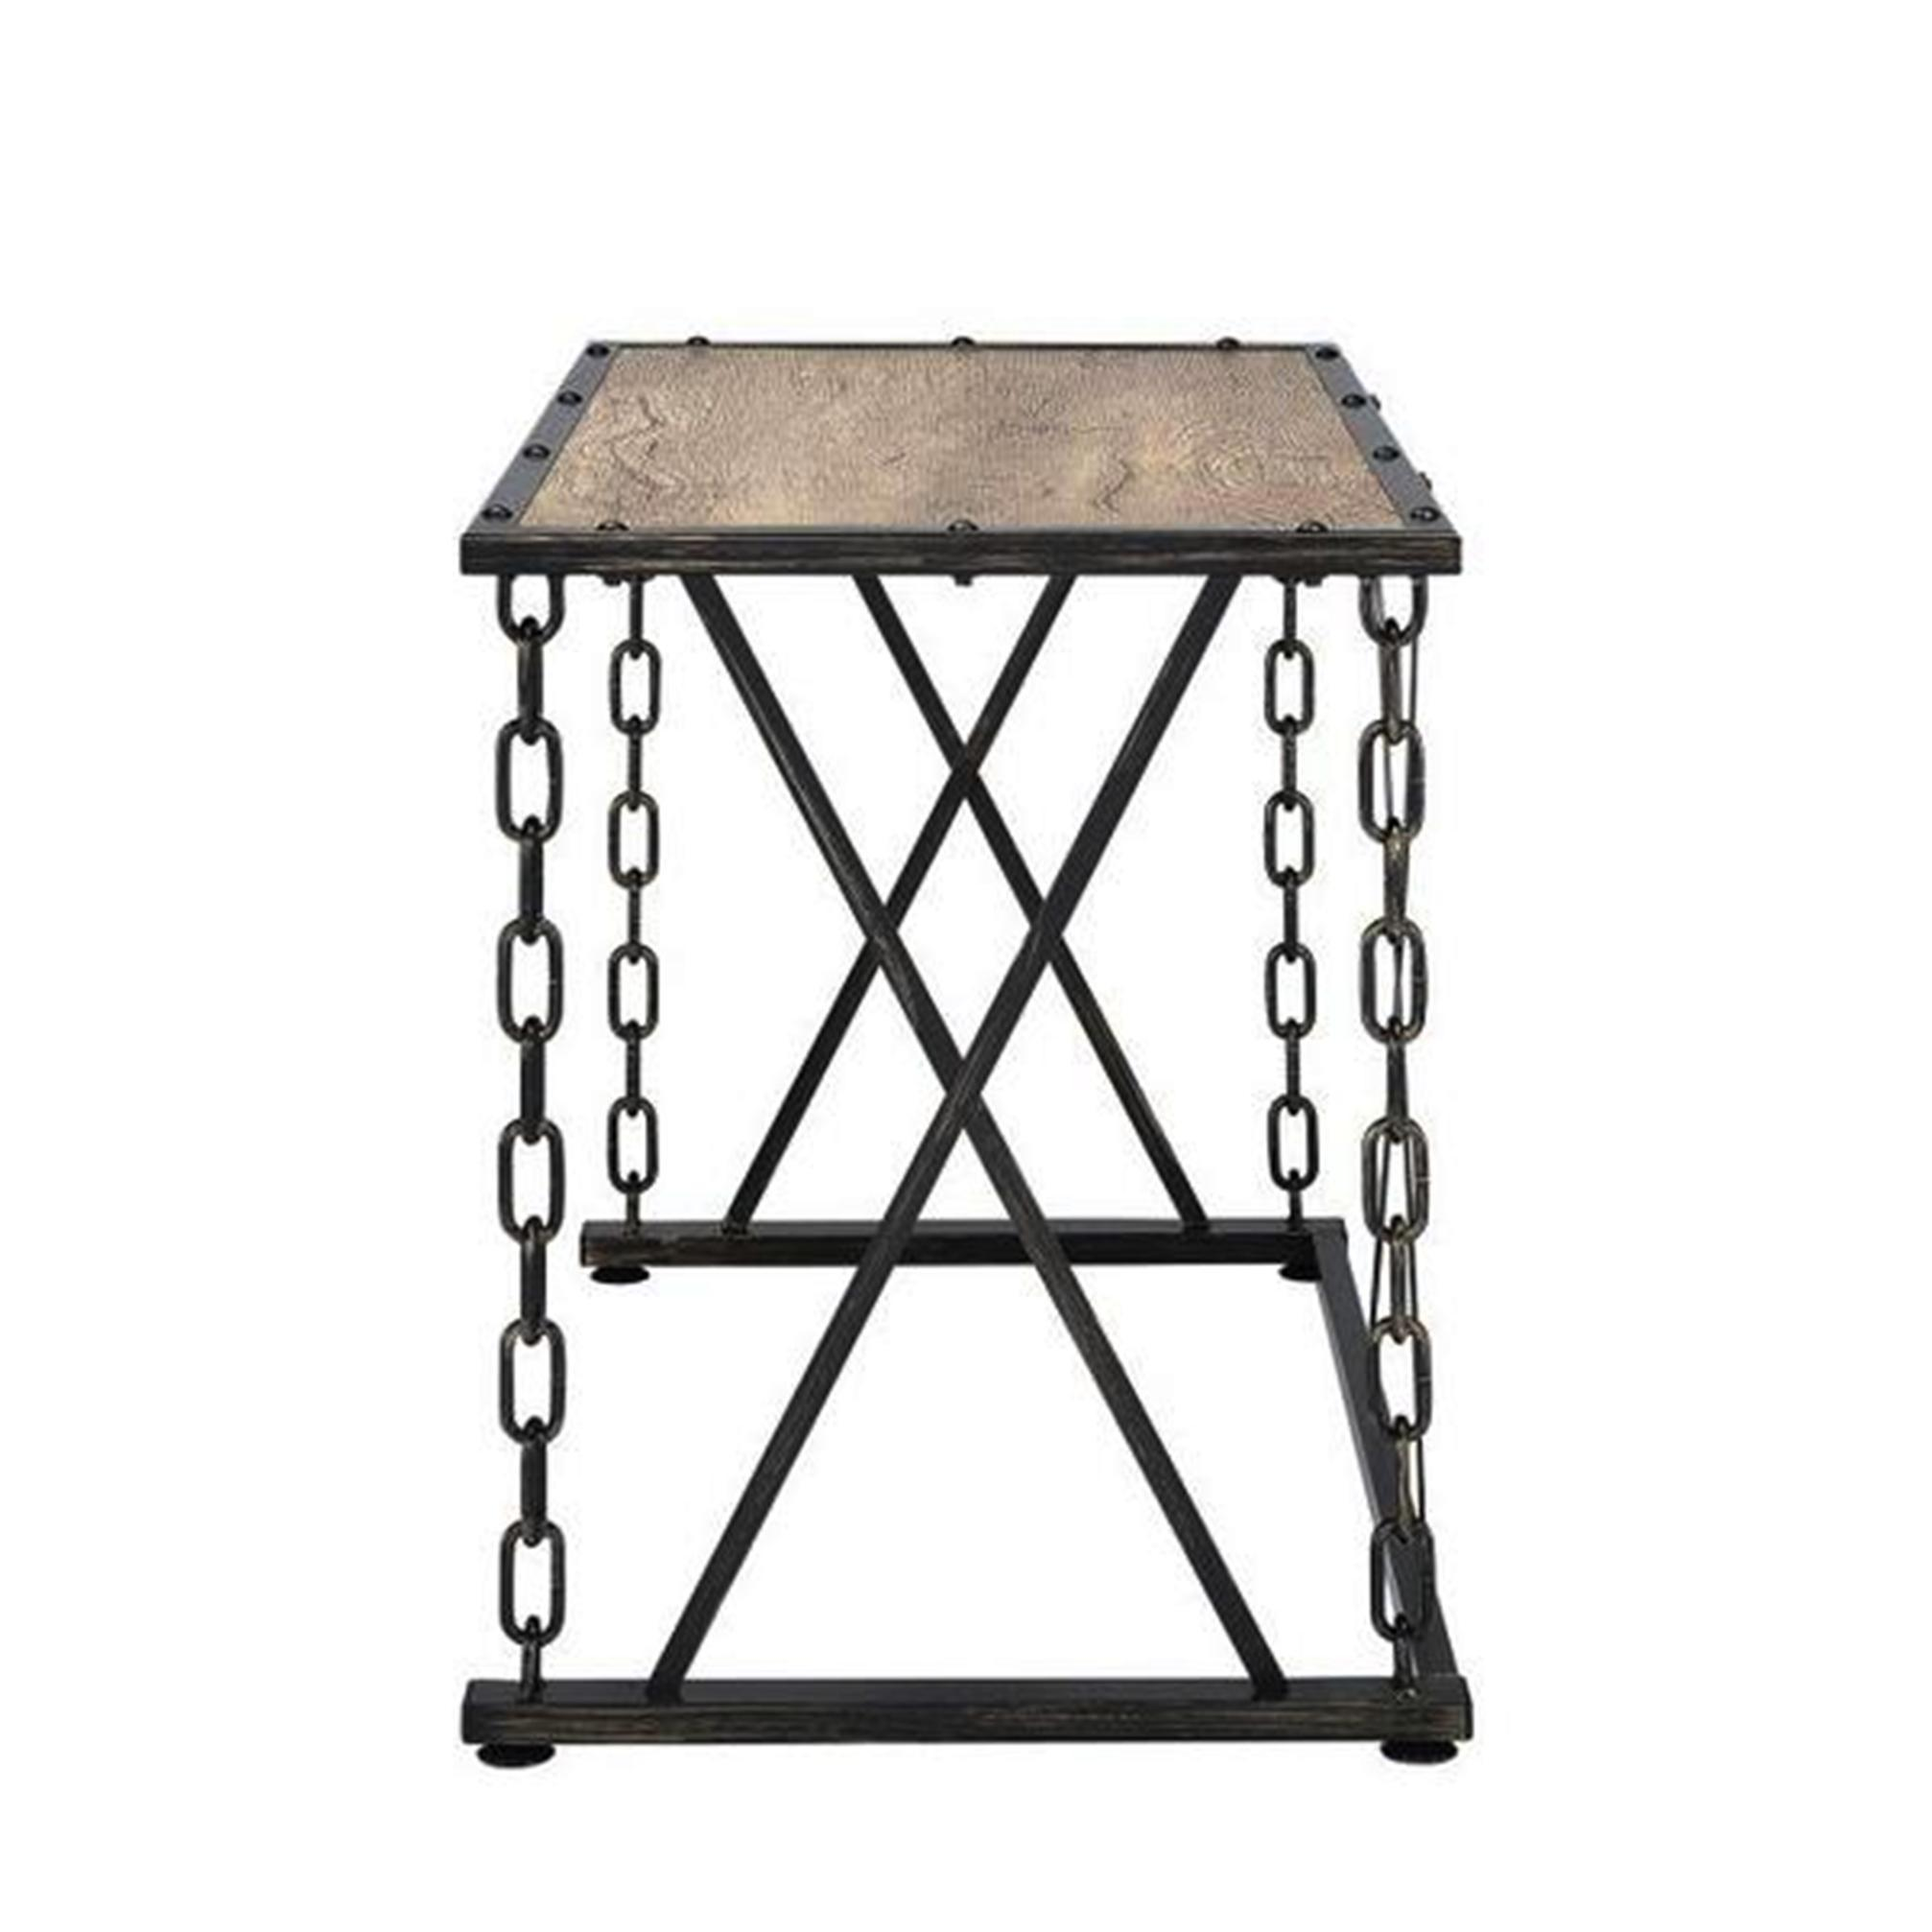 Genial Shop Industrial Distressed Rustic Finish Chain Link Design Home Office  Computer/ Writing Desk   Free Shipping Today   Overstock.com   14061599